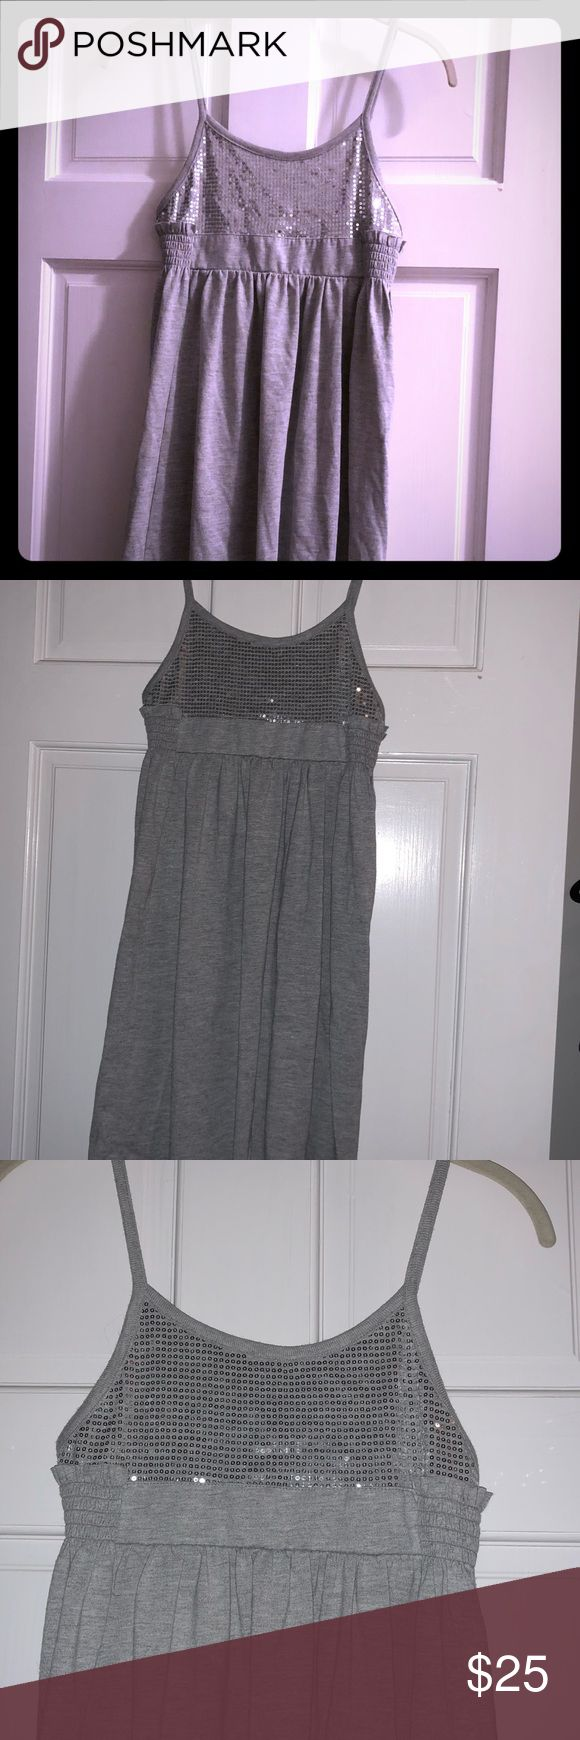 French connection dress/top French connection silver & sequin dress/top Wear just as a dress or with a pair of leggings  Brand new with tags Size large-Fits medium French Connection Dresses Midi